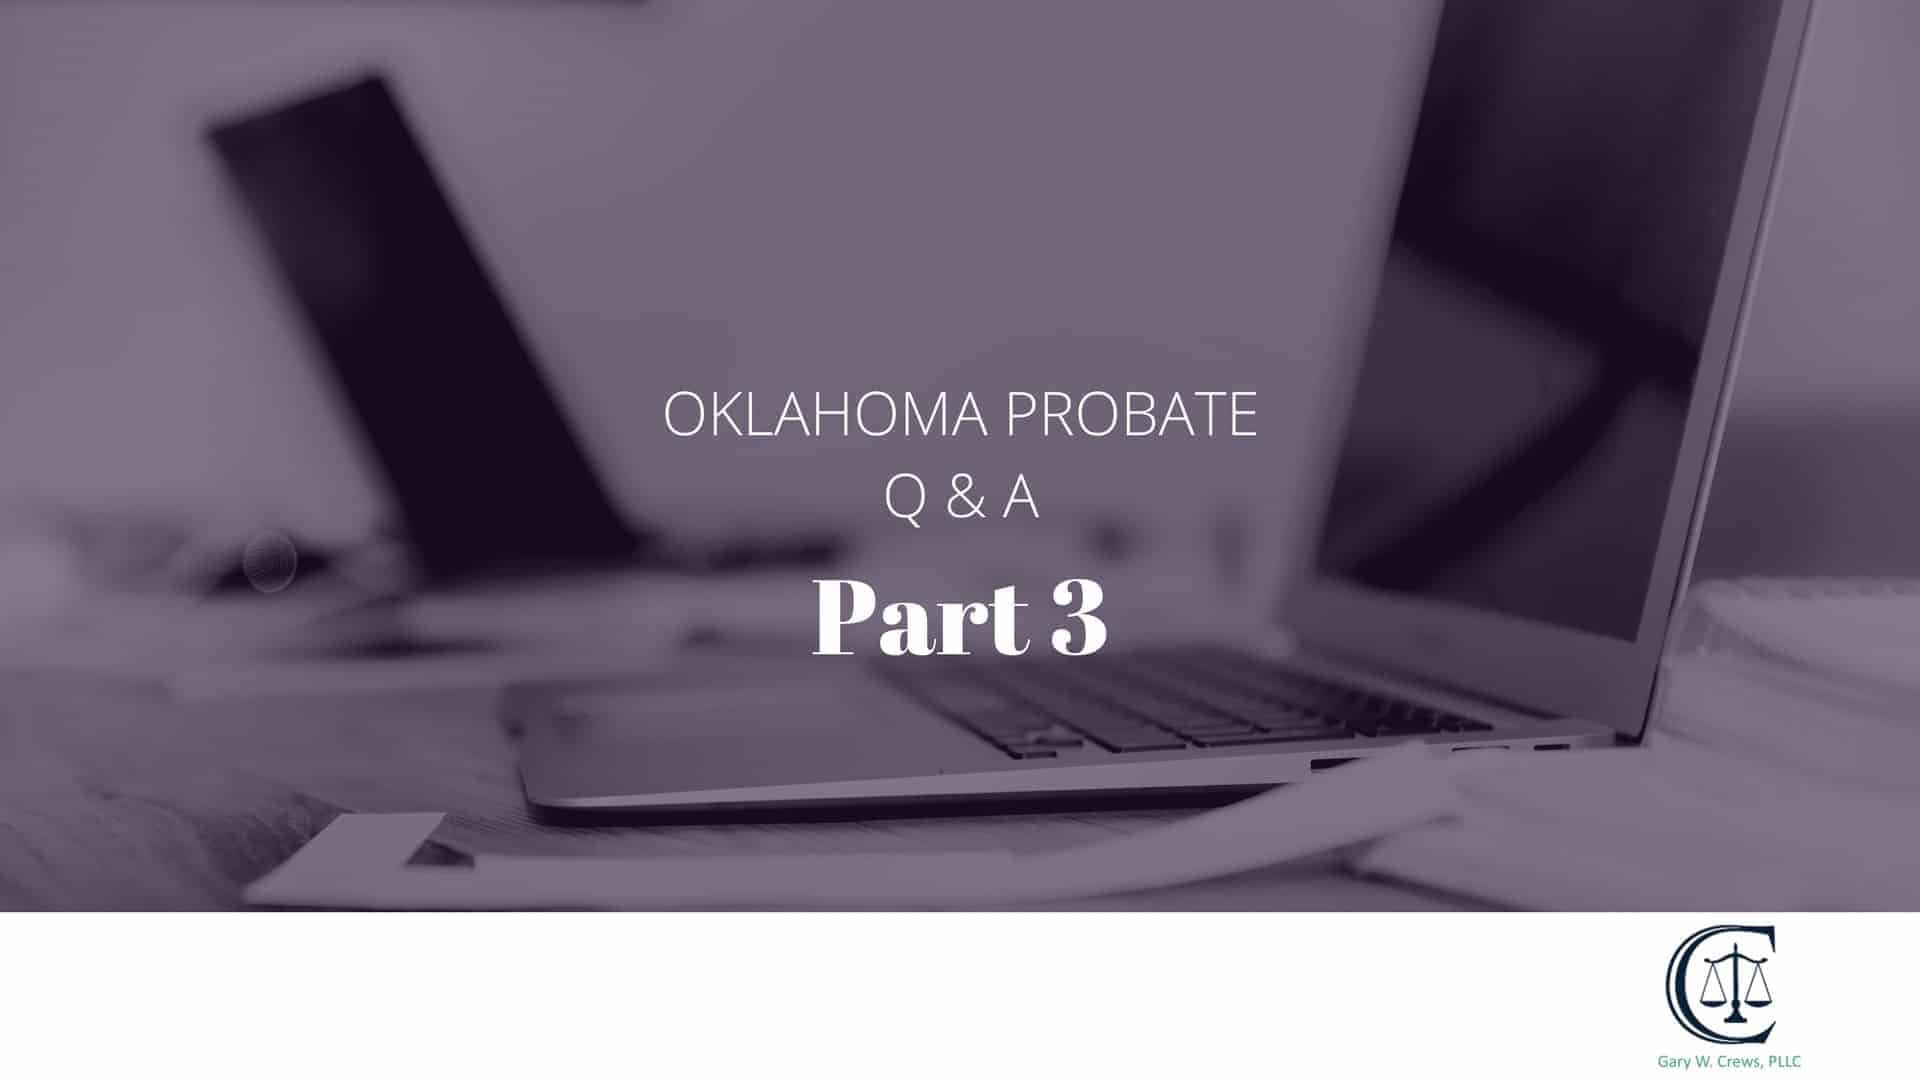 oklahoma probate law q & a part 3 - probate Qa 2 1 - Oklahoma Probate Law Q & A Part 3